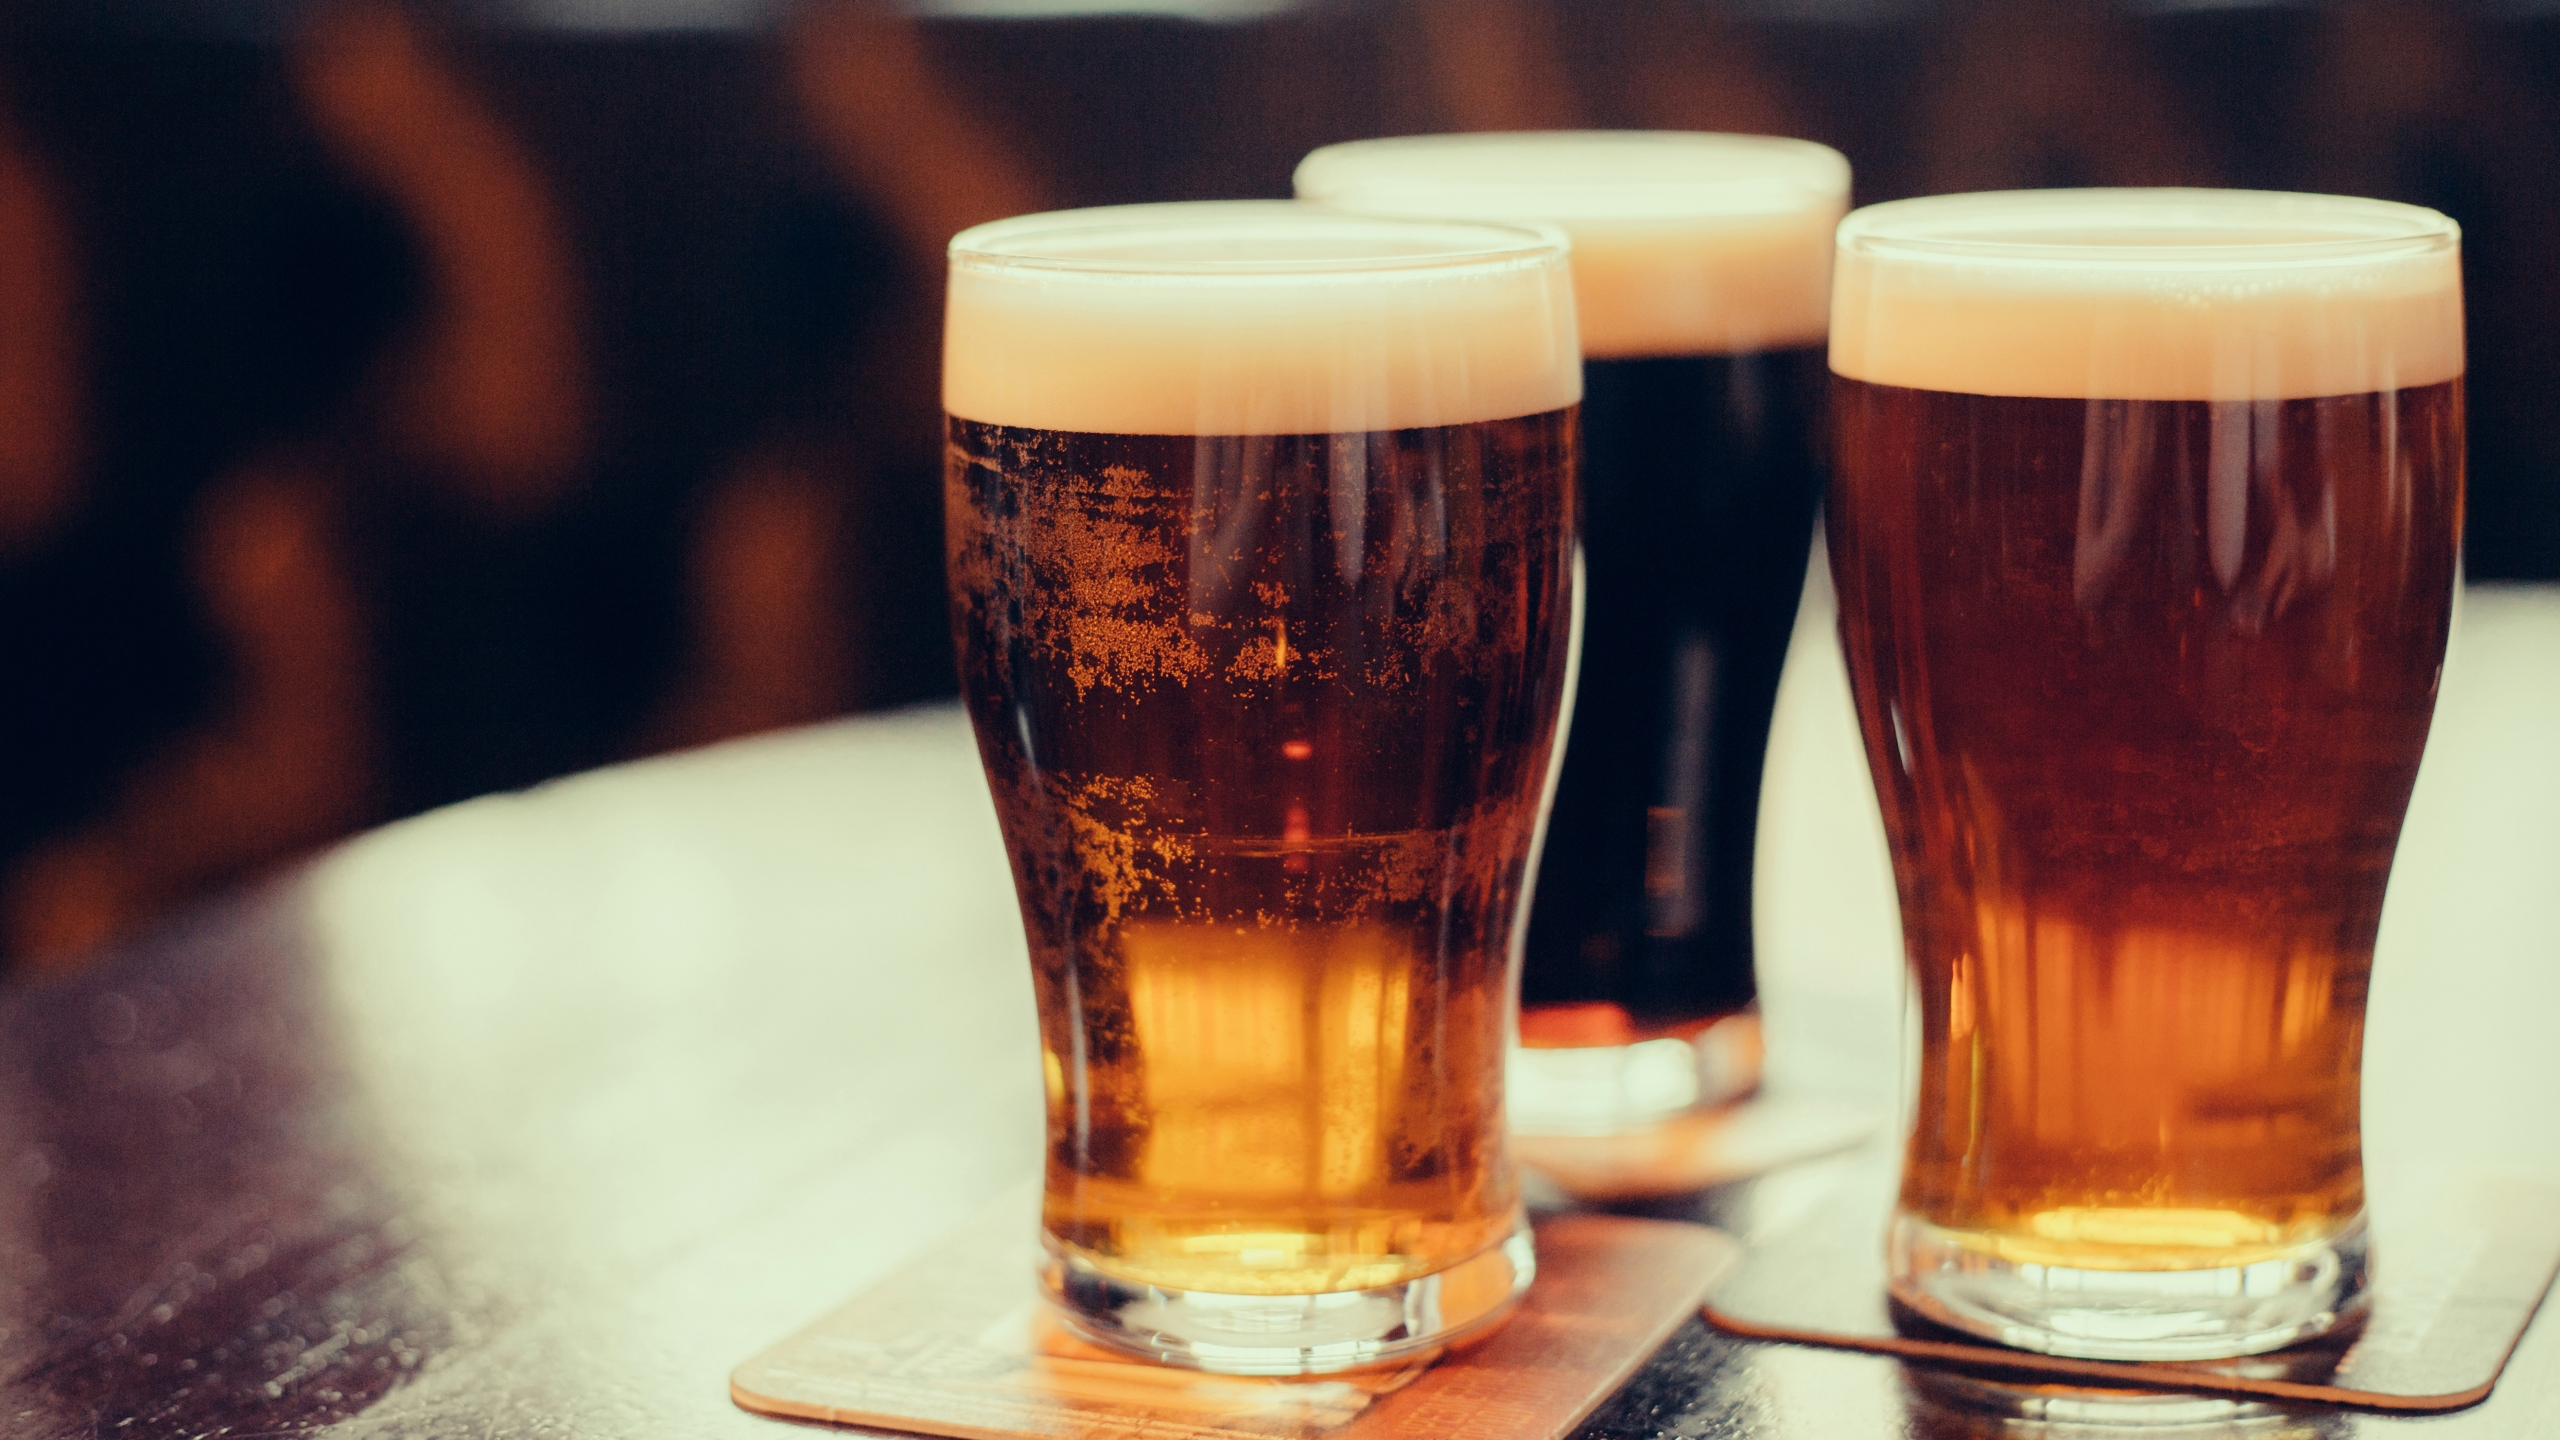 Glasses of beer are seen in a file photo. (Credit: iStock / Getty Images Plus)